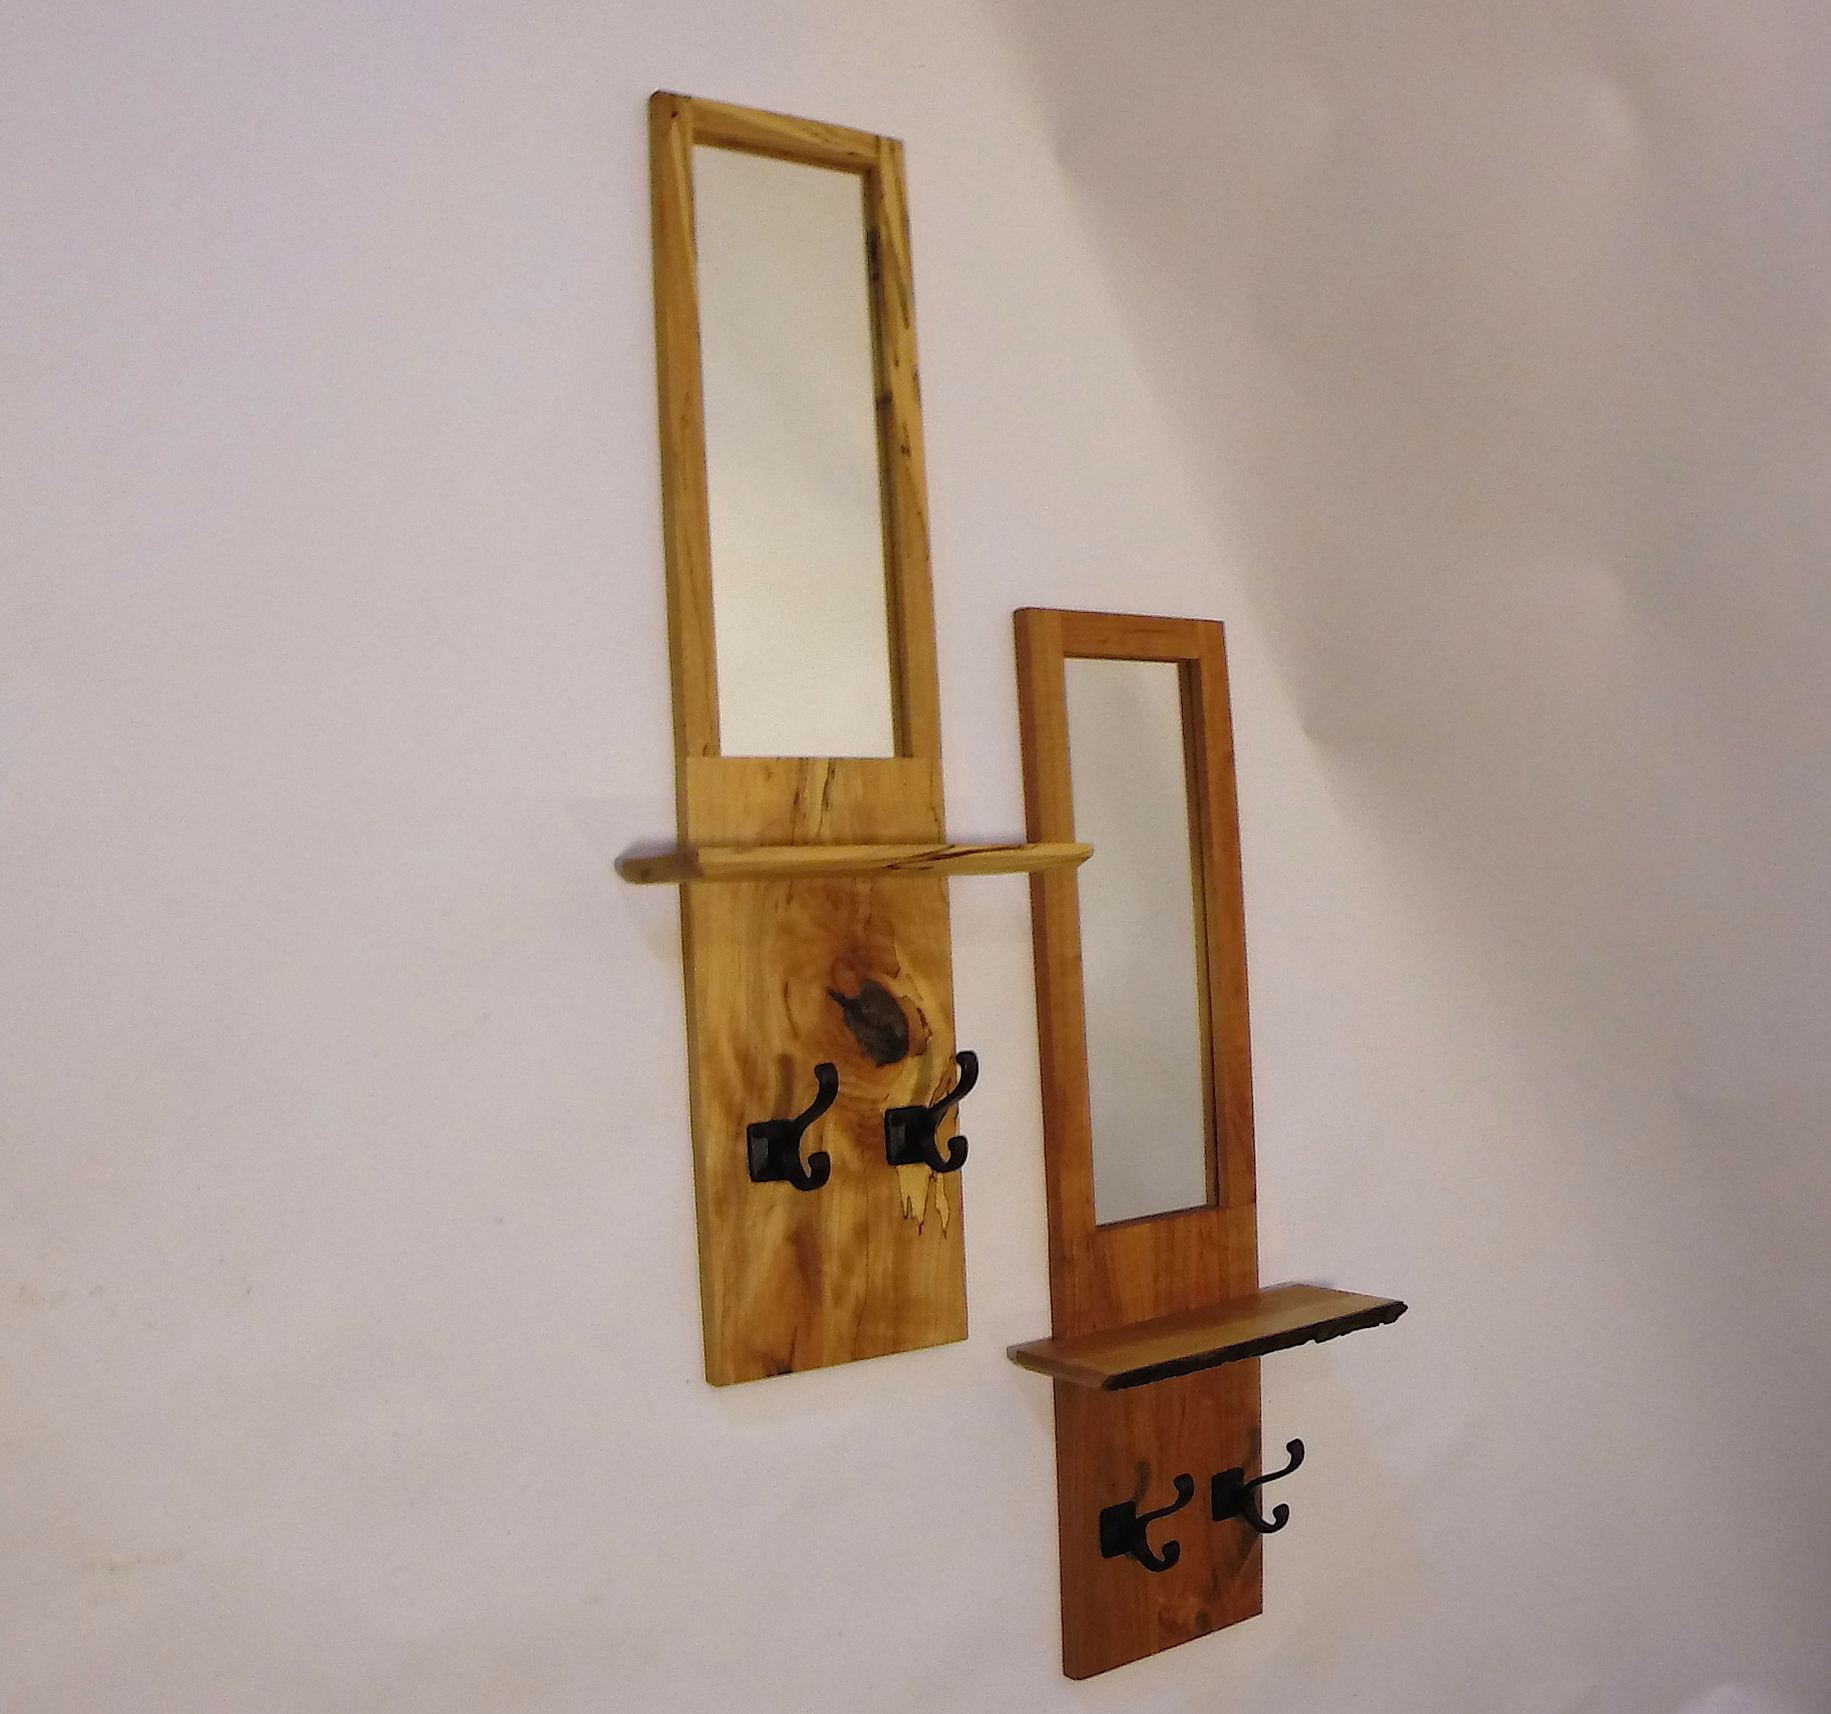 Well Liked Wall Mirrors With Shelf And Hooks With Regard To Wall Mirrors With Shelves And Hooks – Dwyer Wood (View 3 of 20)